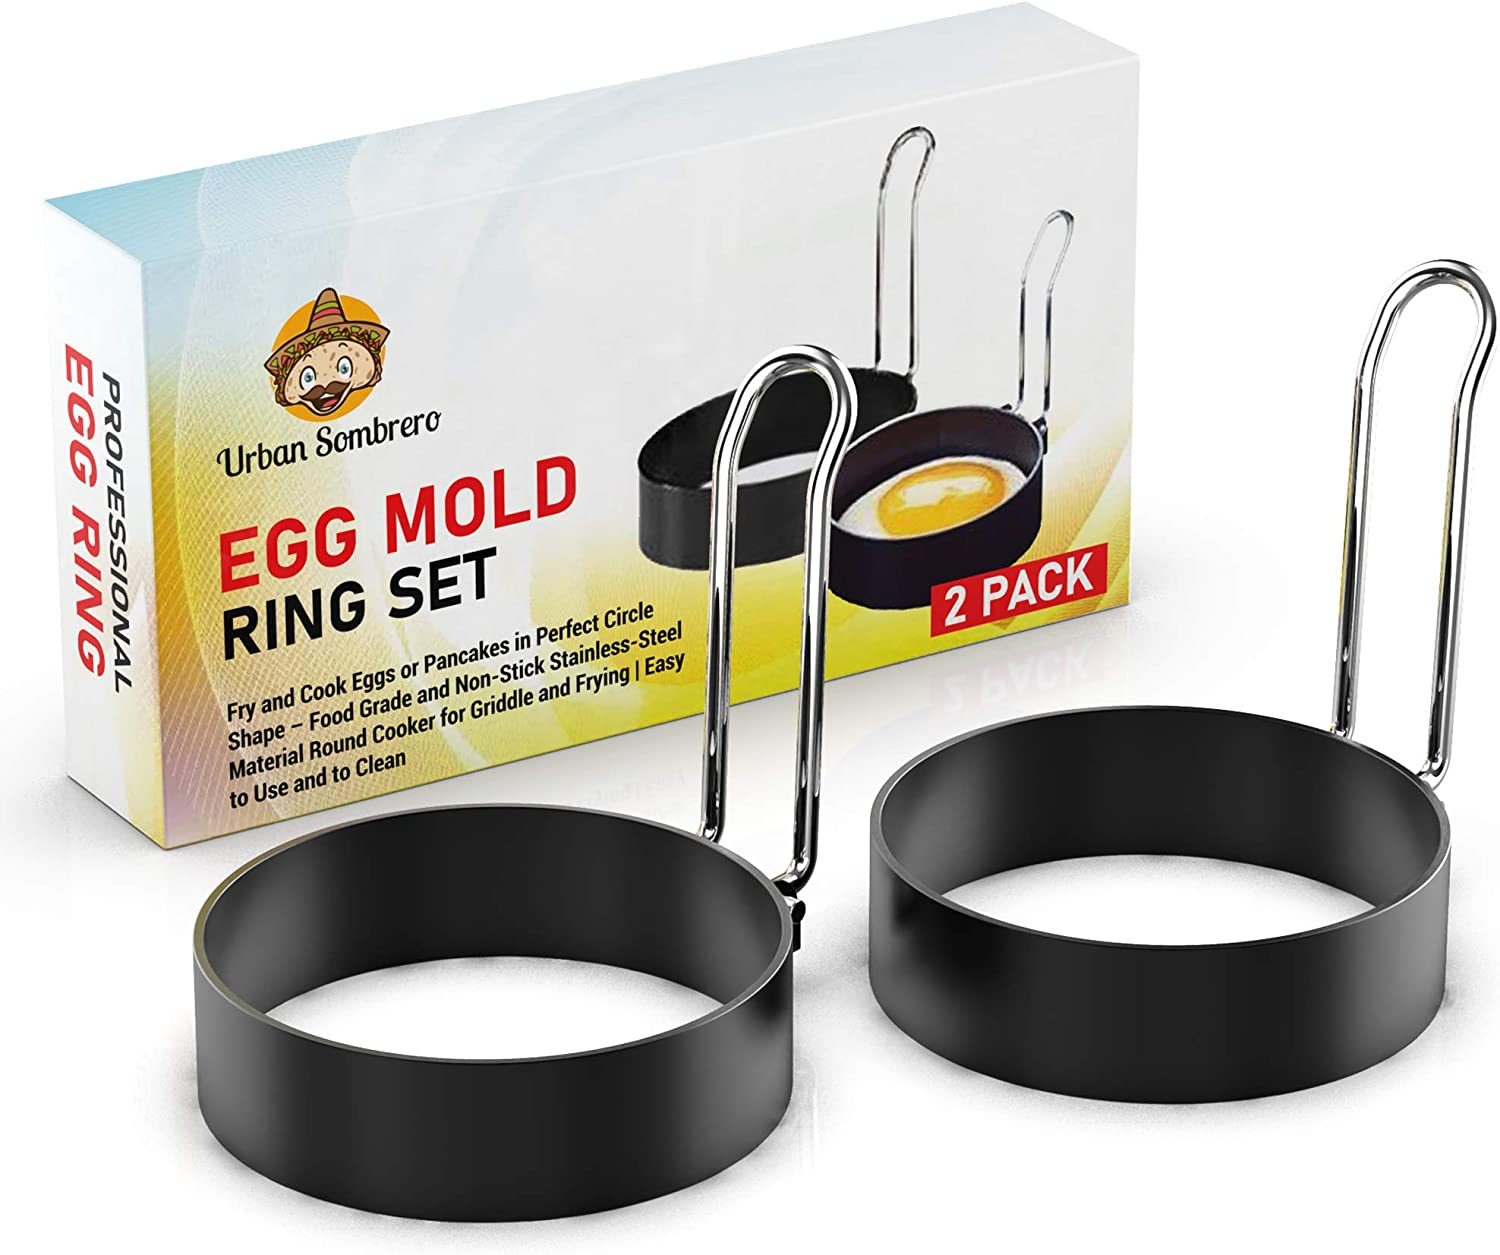 Egg Mold Ring Set (2 Pack) – Fry and Cook Eggs or Pancakes in Perfect Circle Shape – Food Grade and Non-Stick Stainless-Steel Material Round Cooker for Griddle and Frying   Easy to Use and to Clean